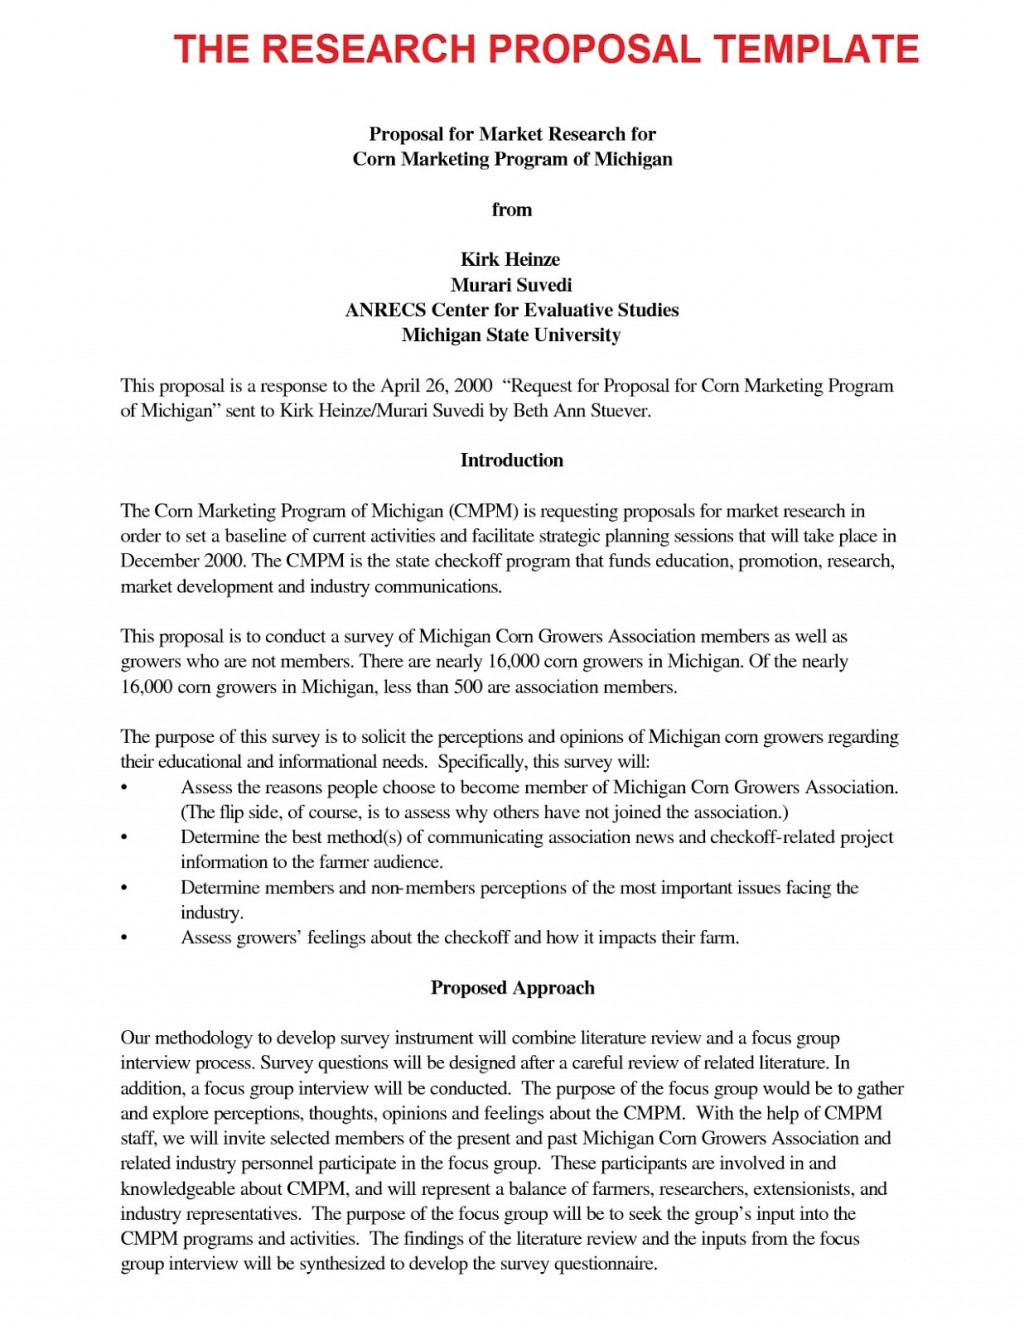 007 Research Paper Research20proposal20template Introduction For Stirring Apa How To Write Sample Large